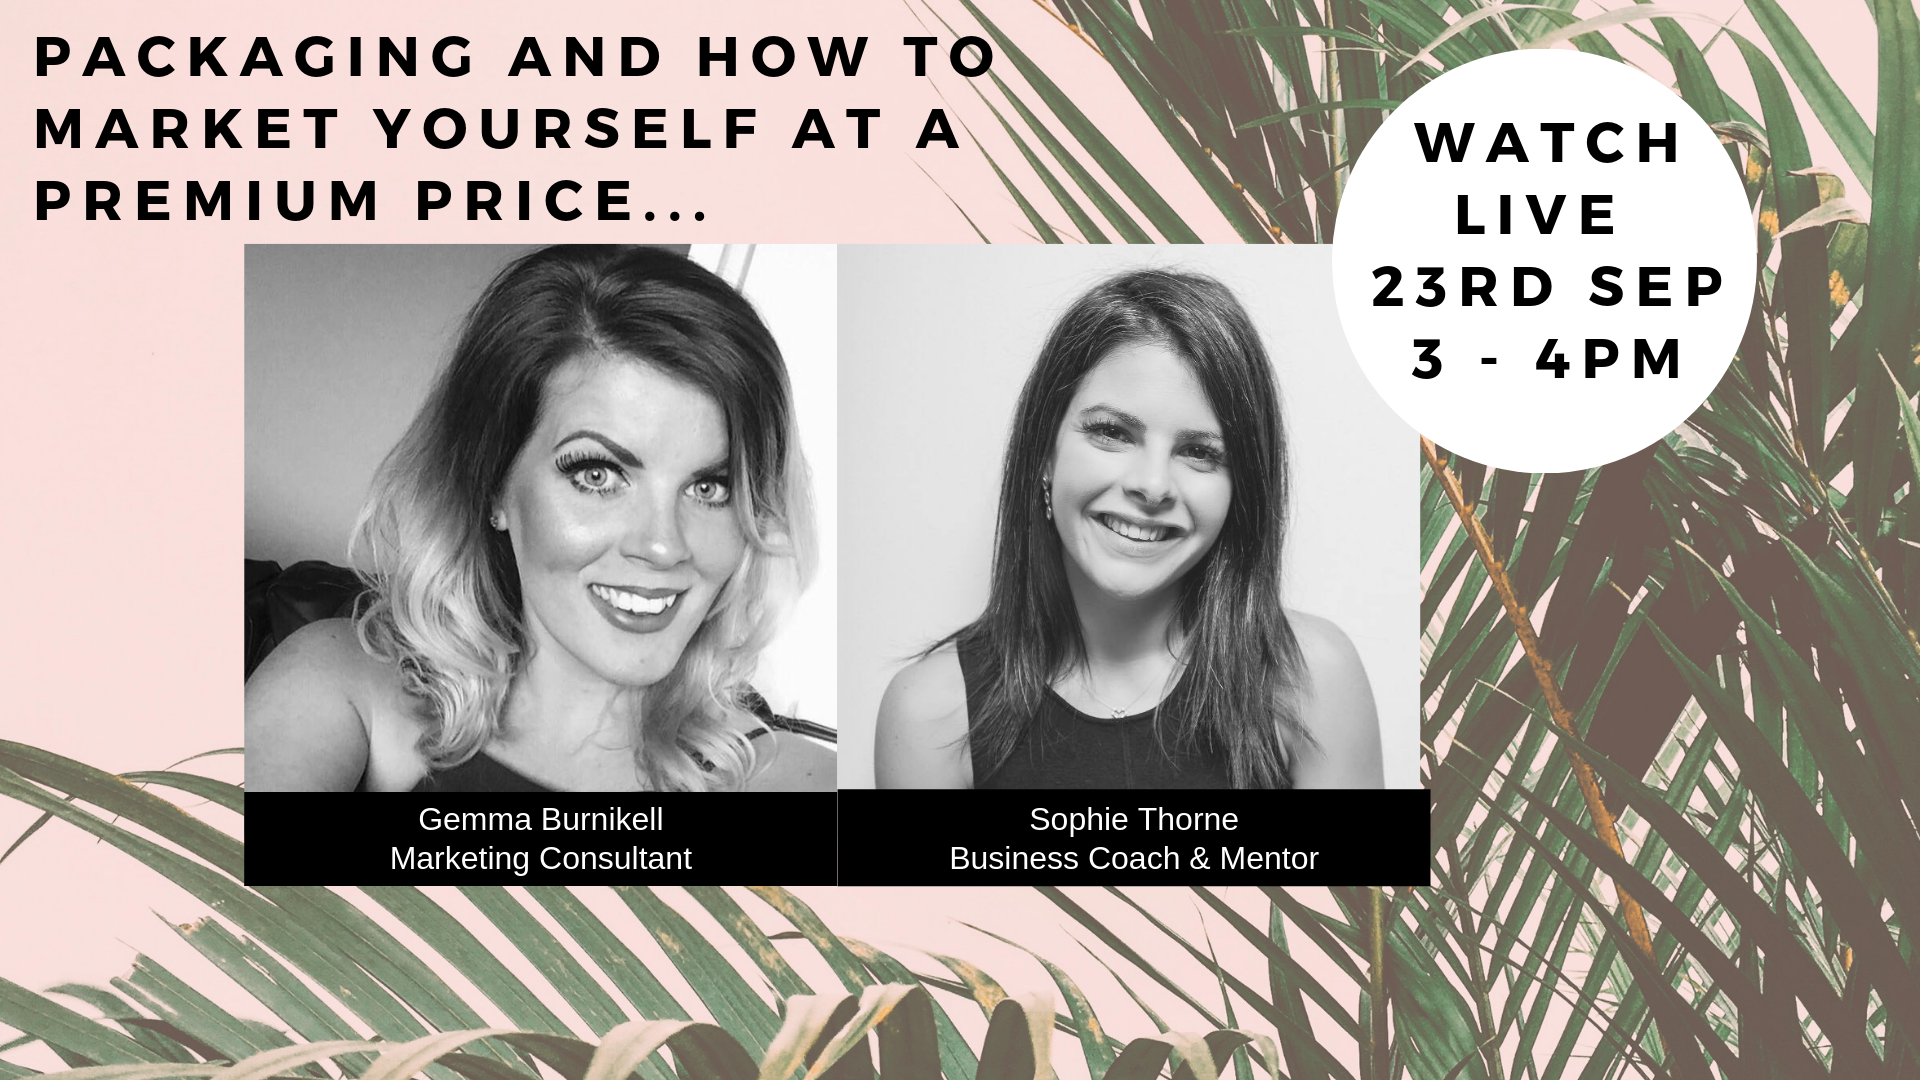 Packaging and Marketing Yourself for Premium Prices - Business Coach & Mentor, Sophie Thorne and Marketing Consultant, Gemma Burnikell join forces to guide you through how to create packages and how to market yourself at a premium priceMonday 23rd September, 3pm, Webinar